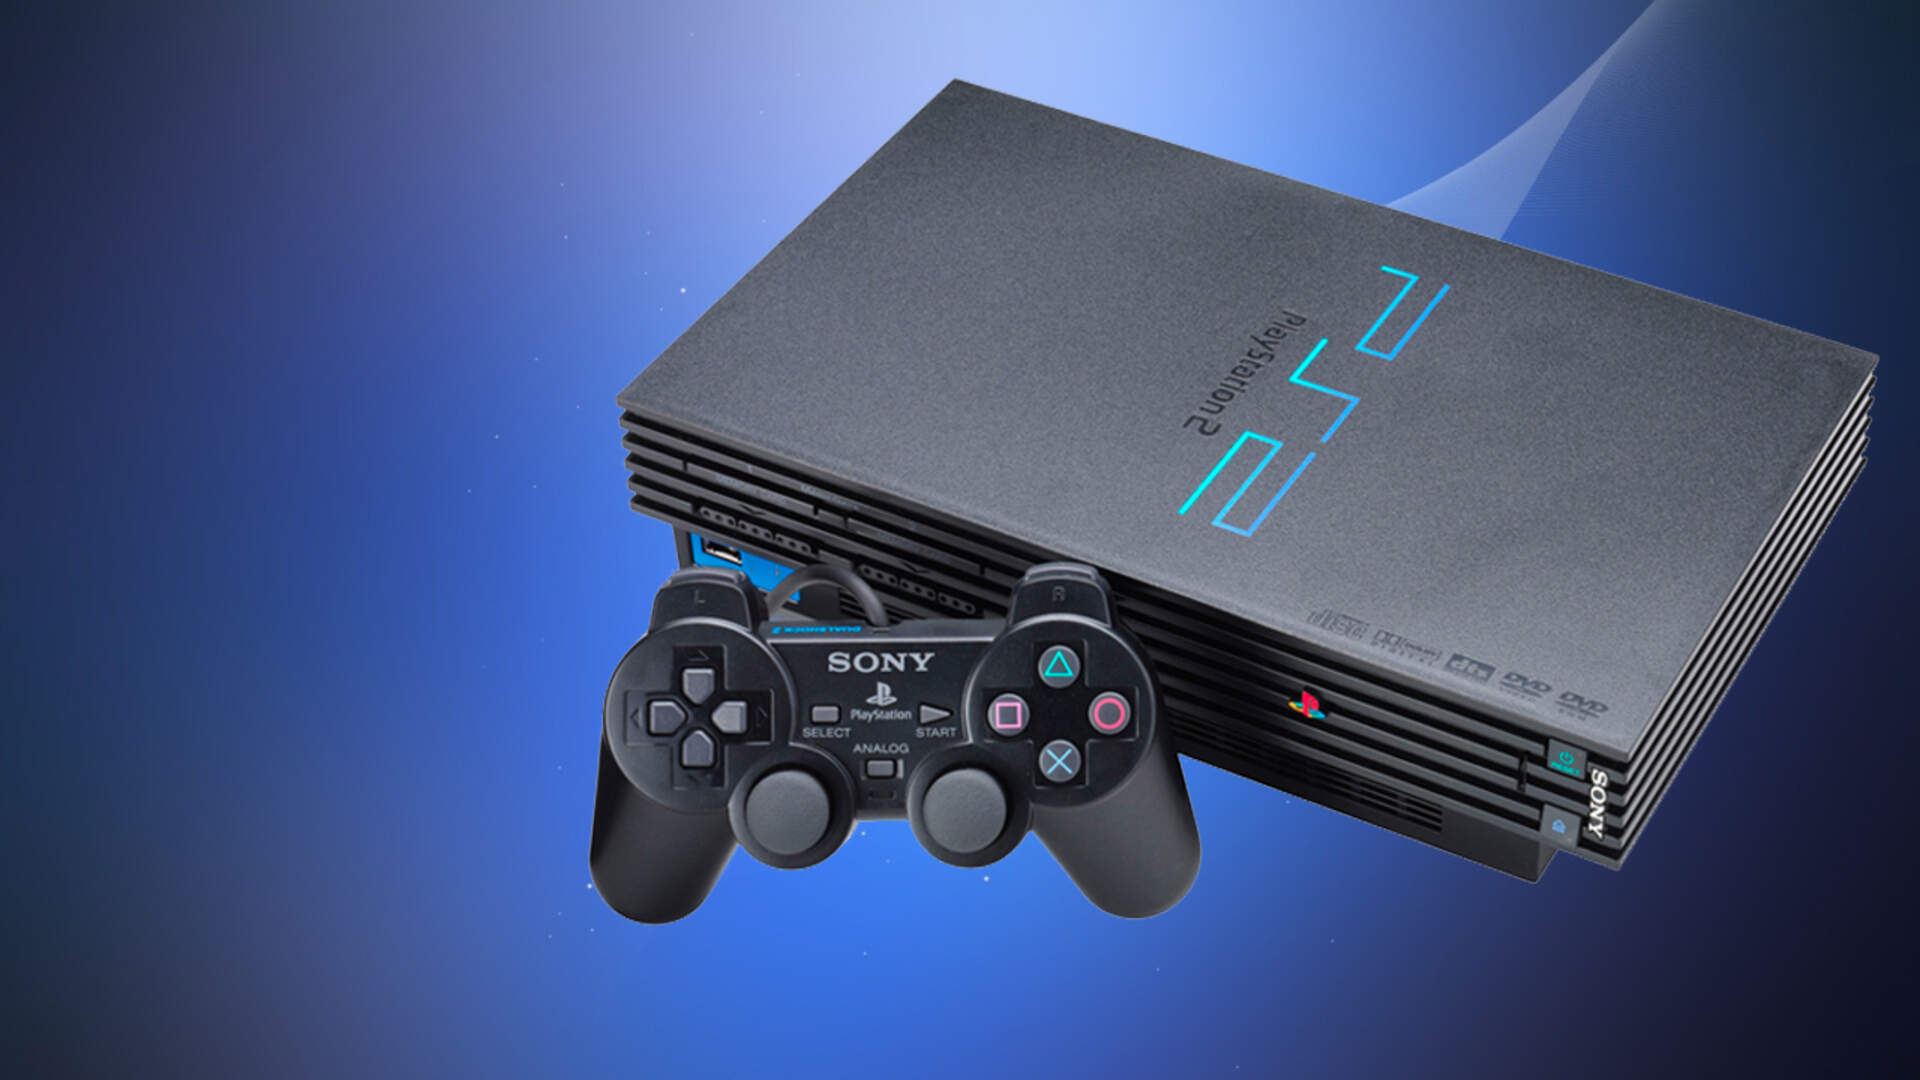 The Case for the PlayStation 2 Being the Greatest Console Ever